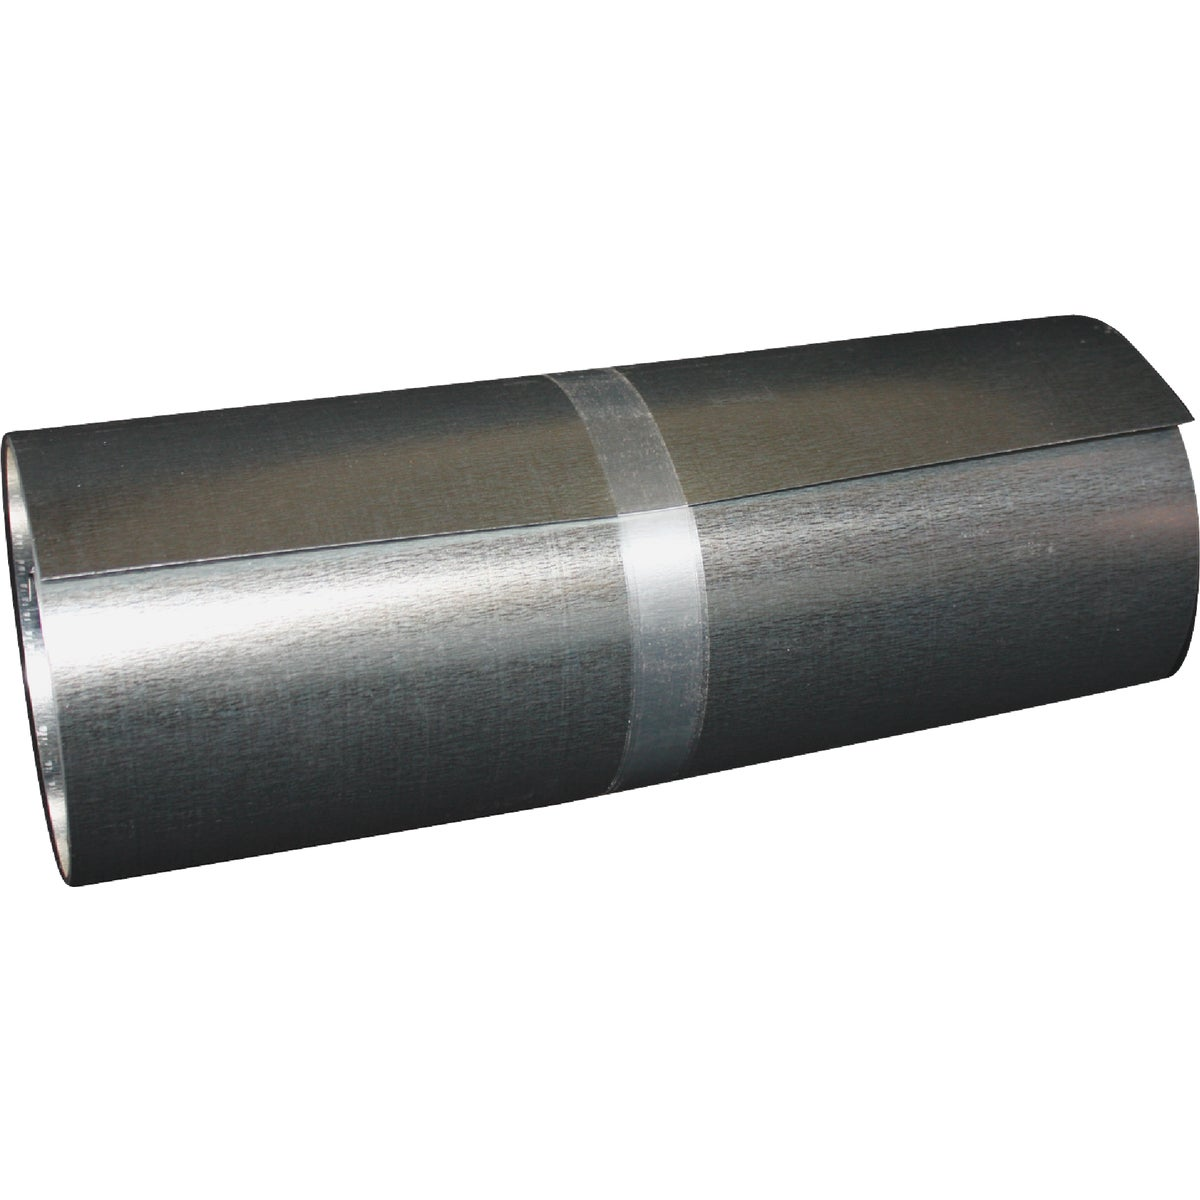 "12""X25' GALV ROLL VALLEY - 30045-GV10 by Klauer Mfg Co"